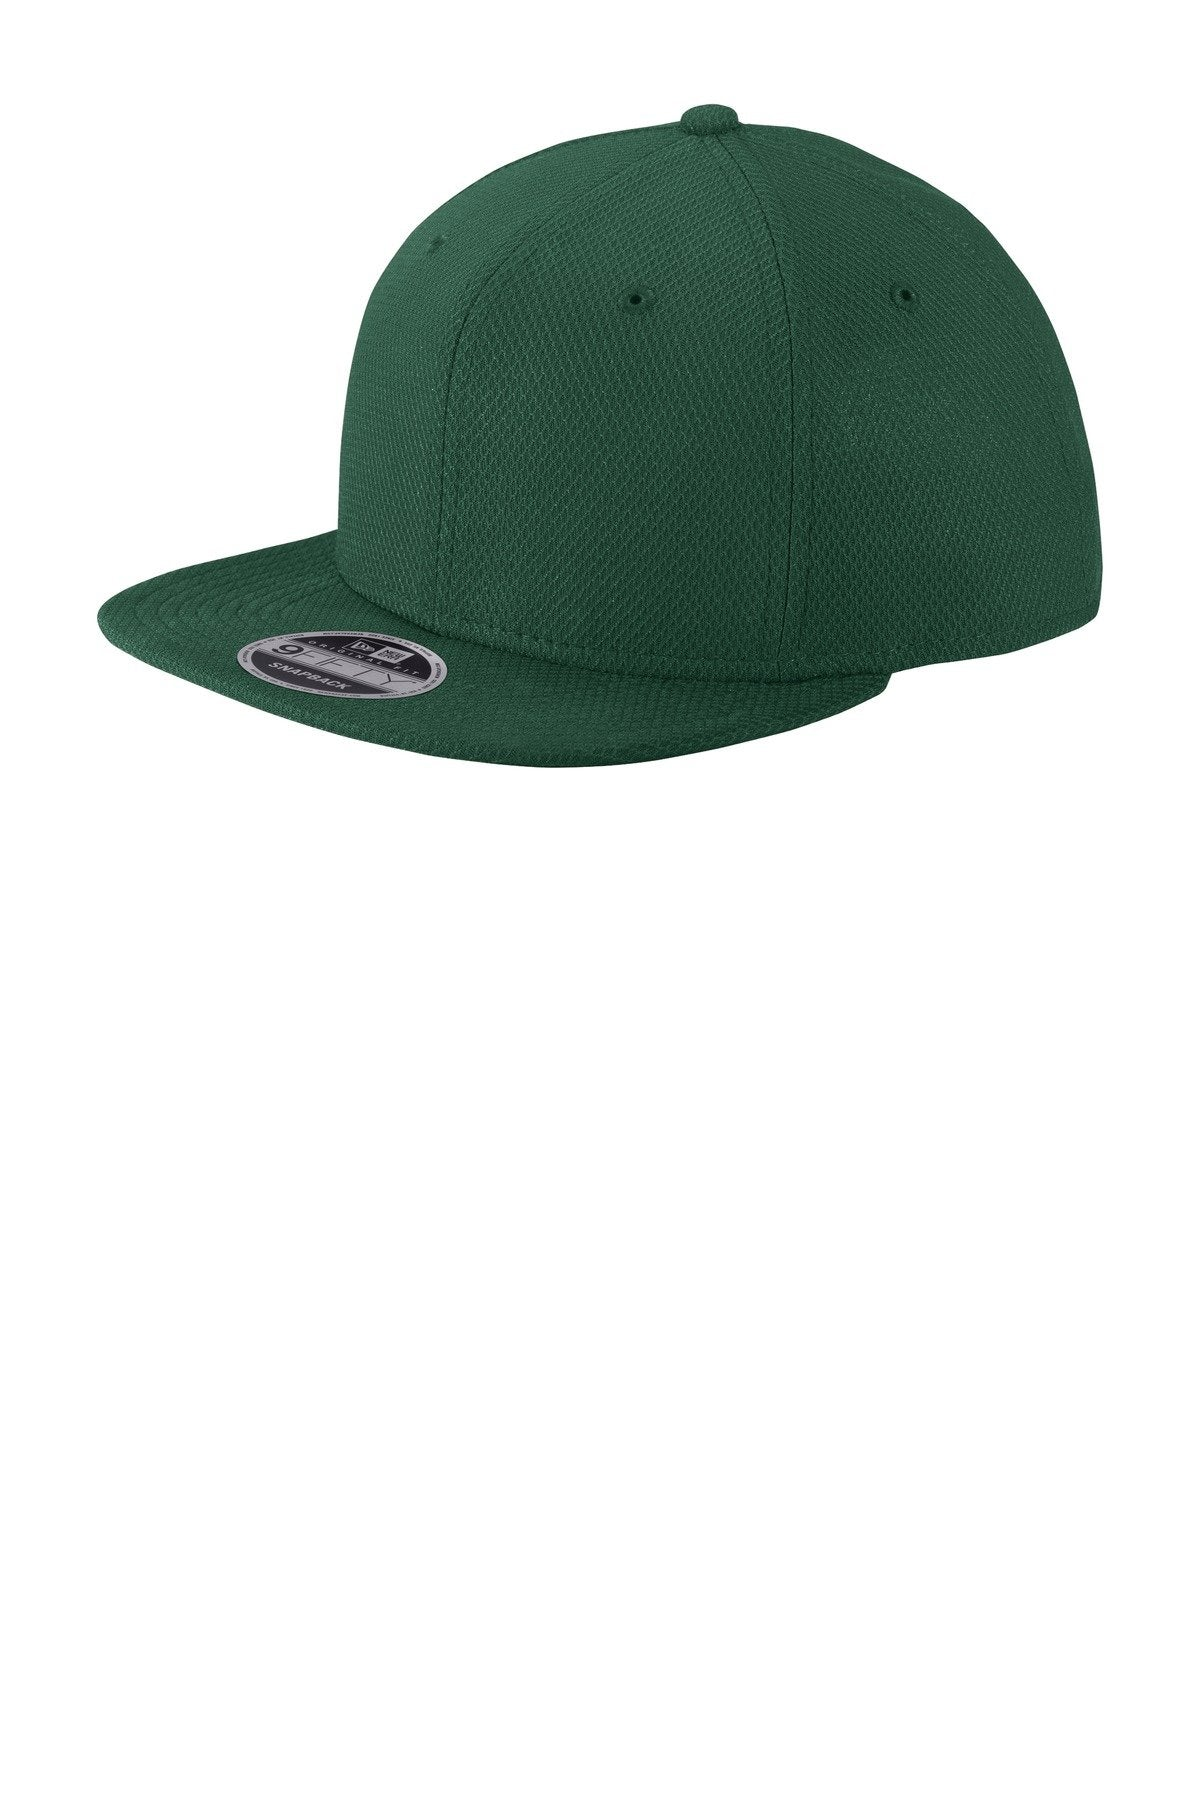 Dark Green - New Era NE404